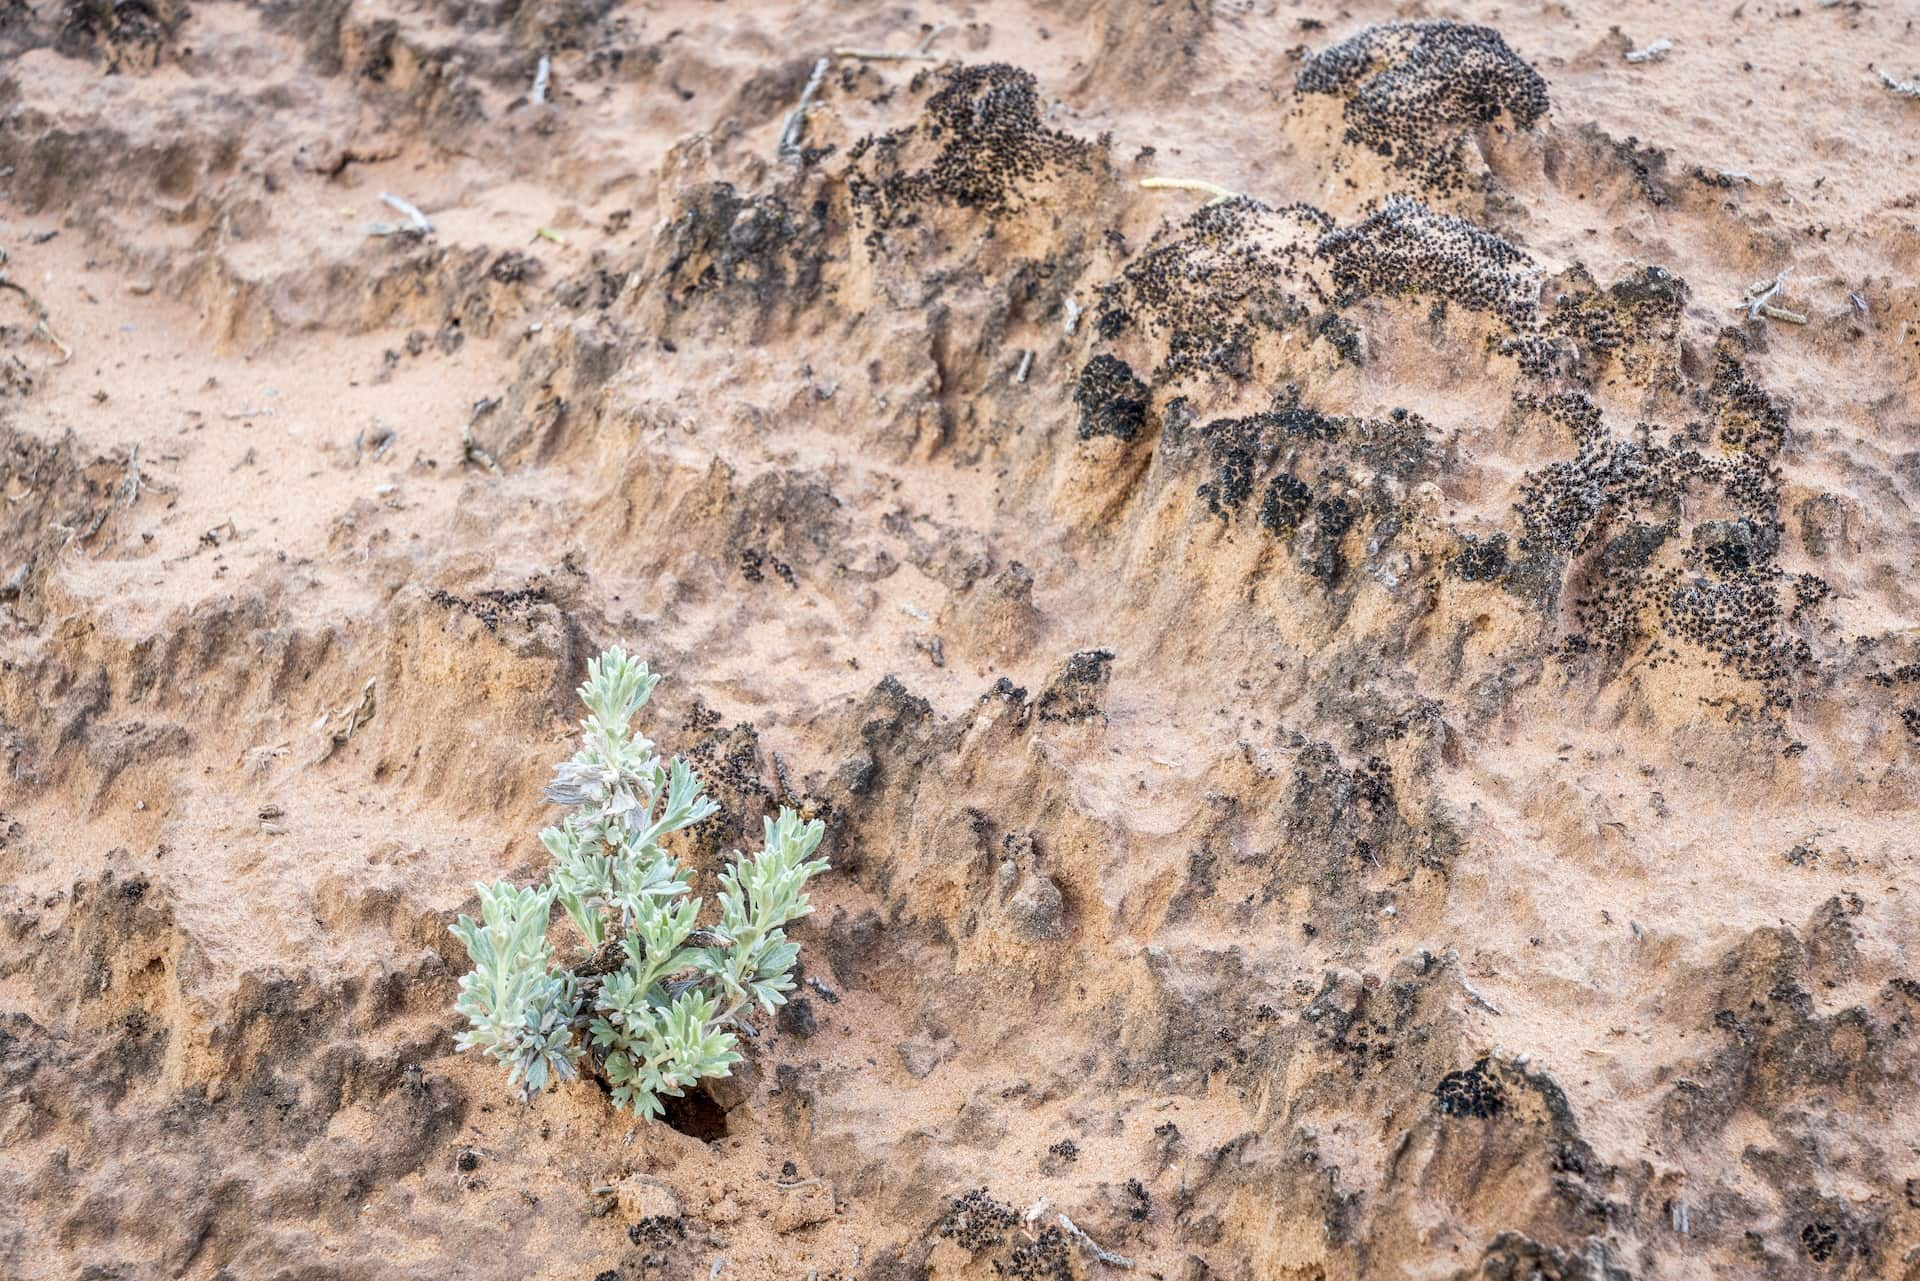 Leave No Trace in the desert - don't step on cryptobiotic soil.